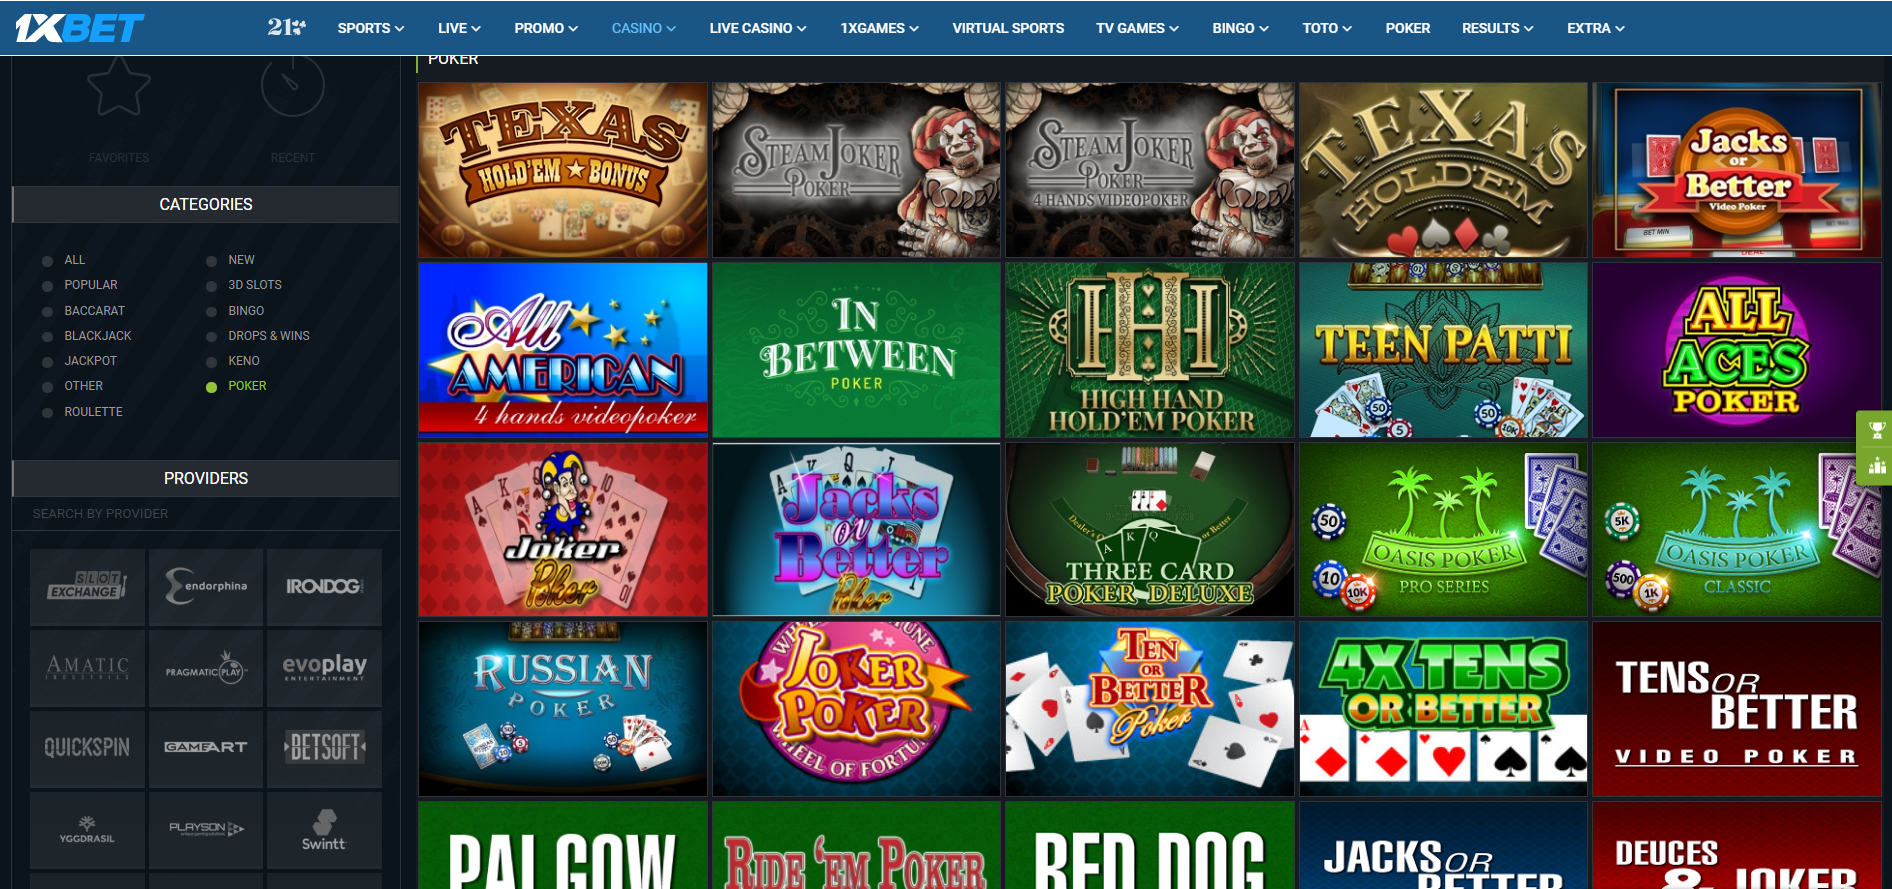 1xbet poker texas holdem jacks or better russian poker pai gow red dog